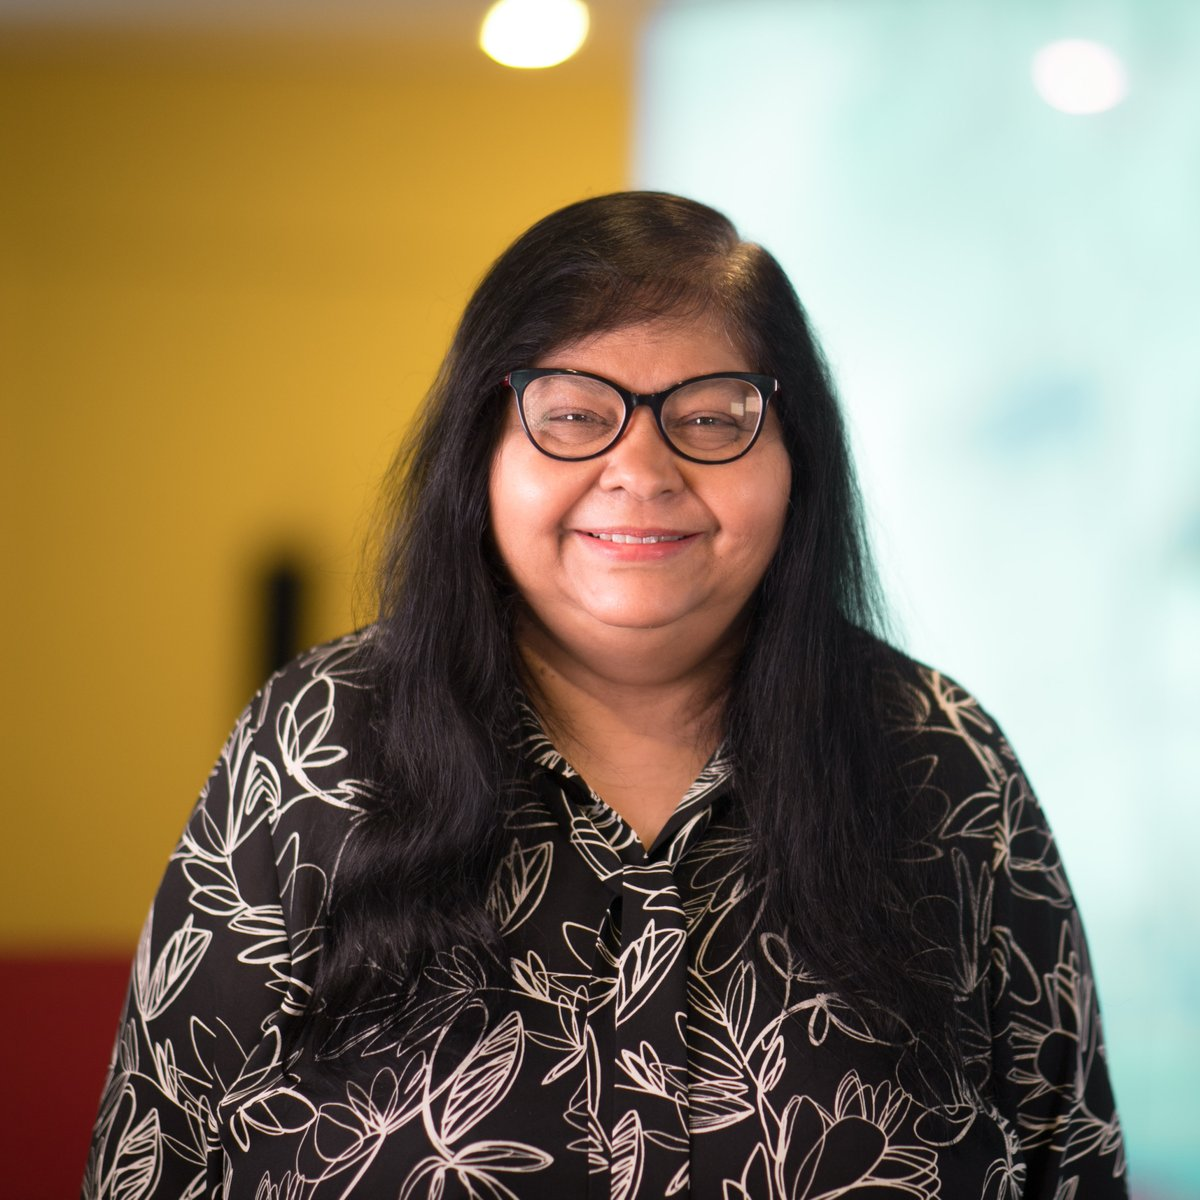 Jehan Ara, Founder of The Nest I/O joins TikTok's Safety Advisory Council!  Check out our blog post for more details about Tik Tok's Asia Pacific (APAC) Safety Advisory Council.  https://t.co/t8Uvv9vJSV  #TheNestIO #BigNews #TikTok https://t.co/0frej8rone